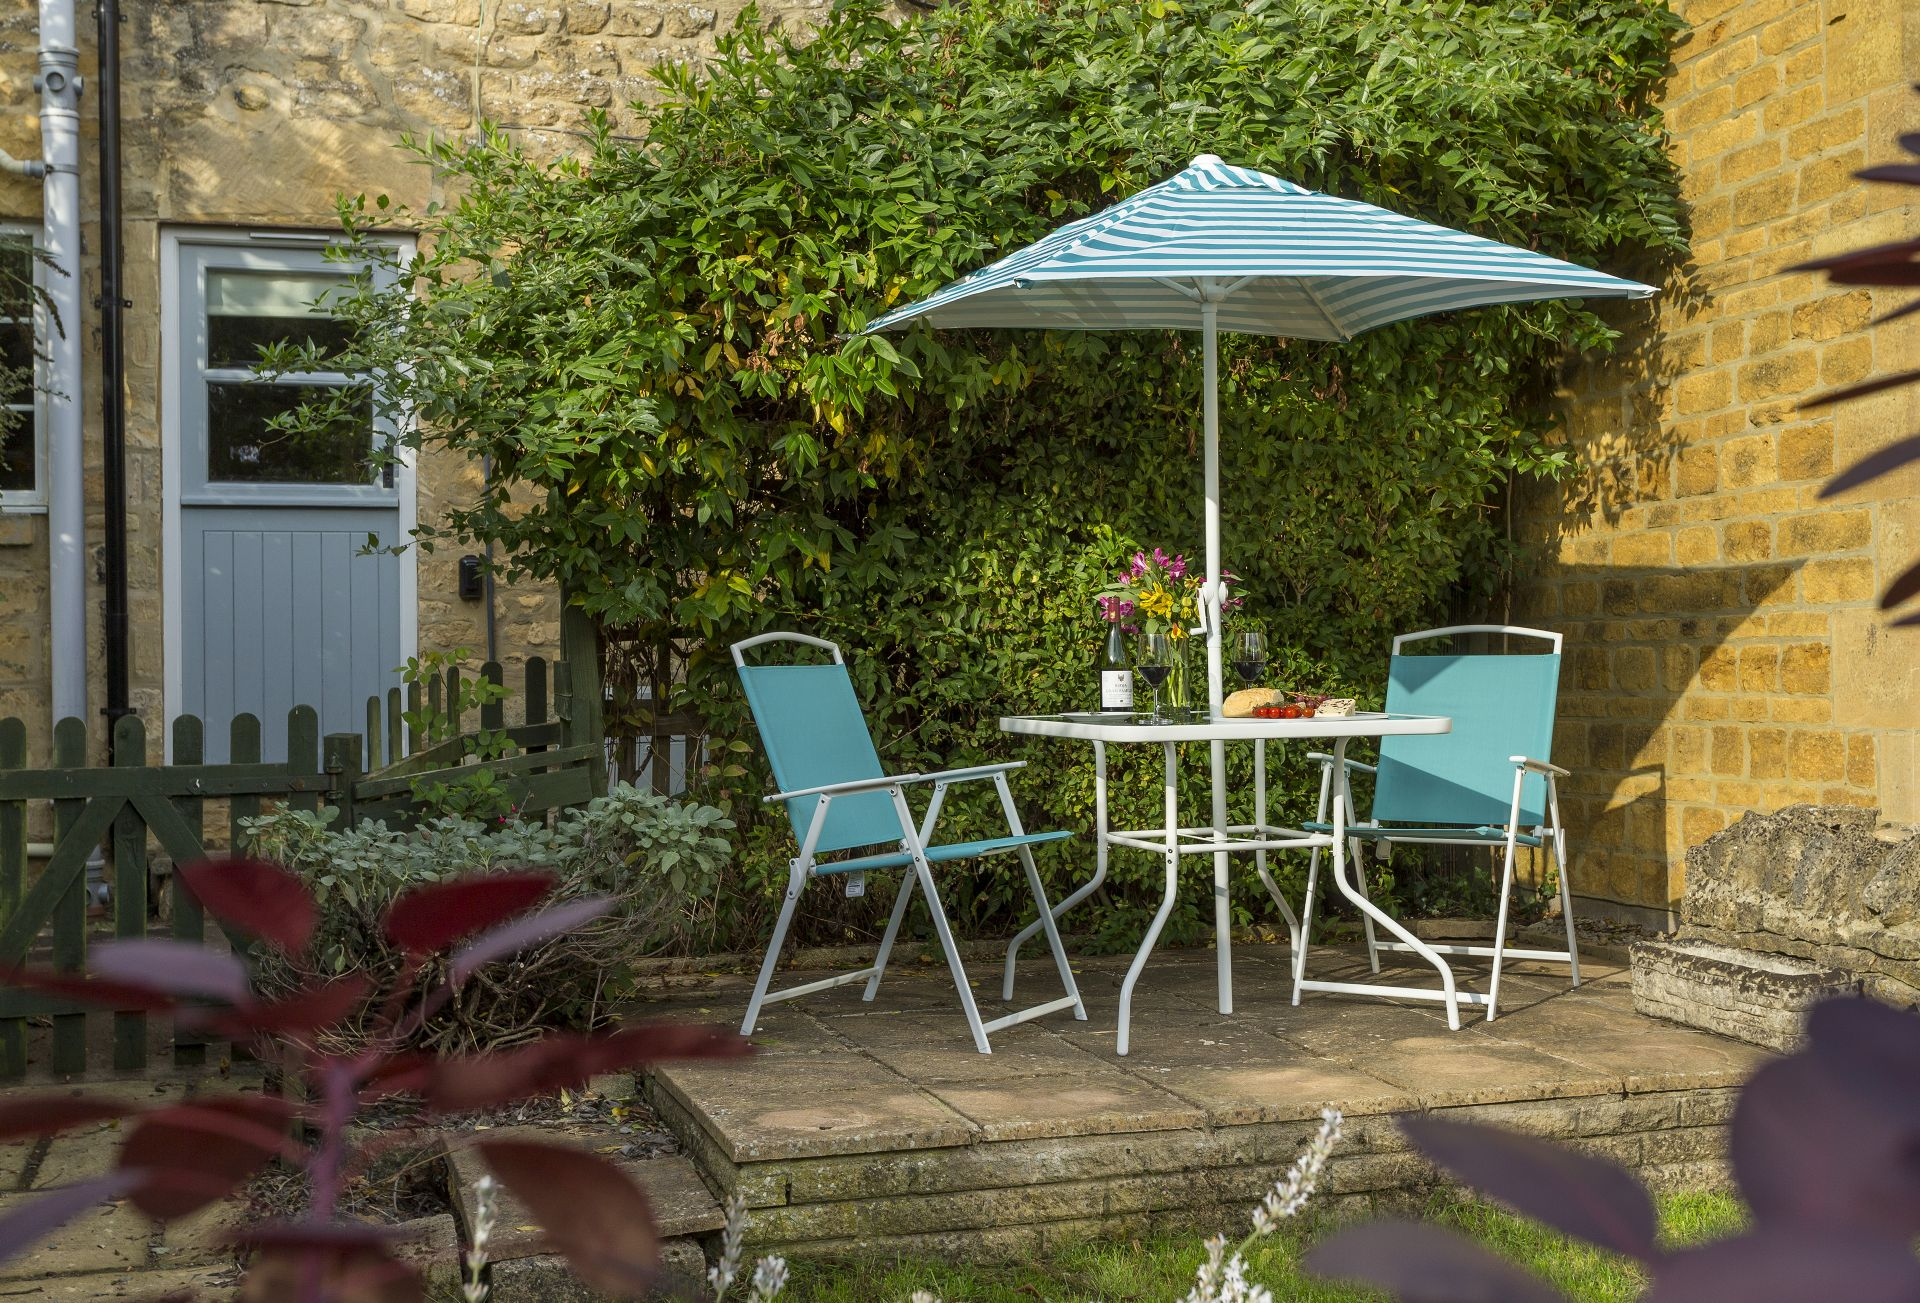 Enclosed garden: Outdoor table and chairs